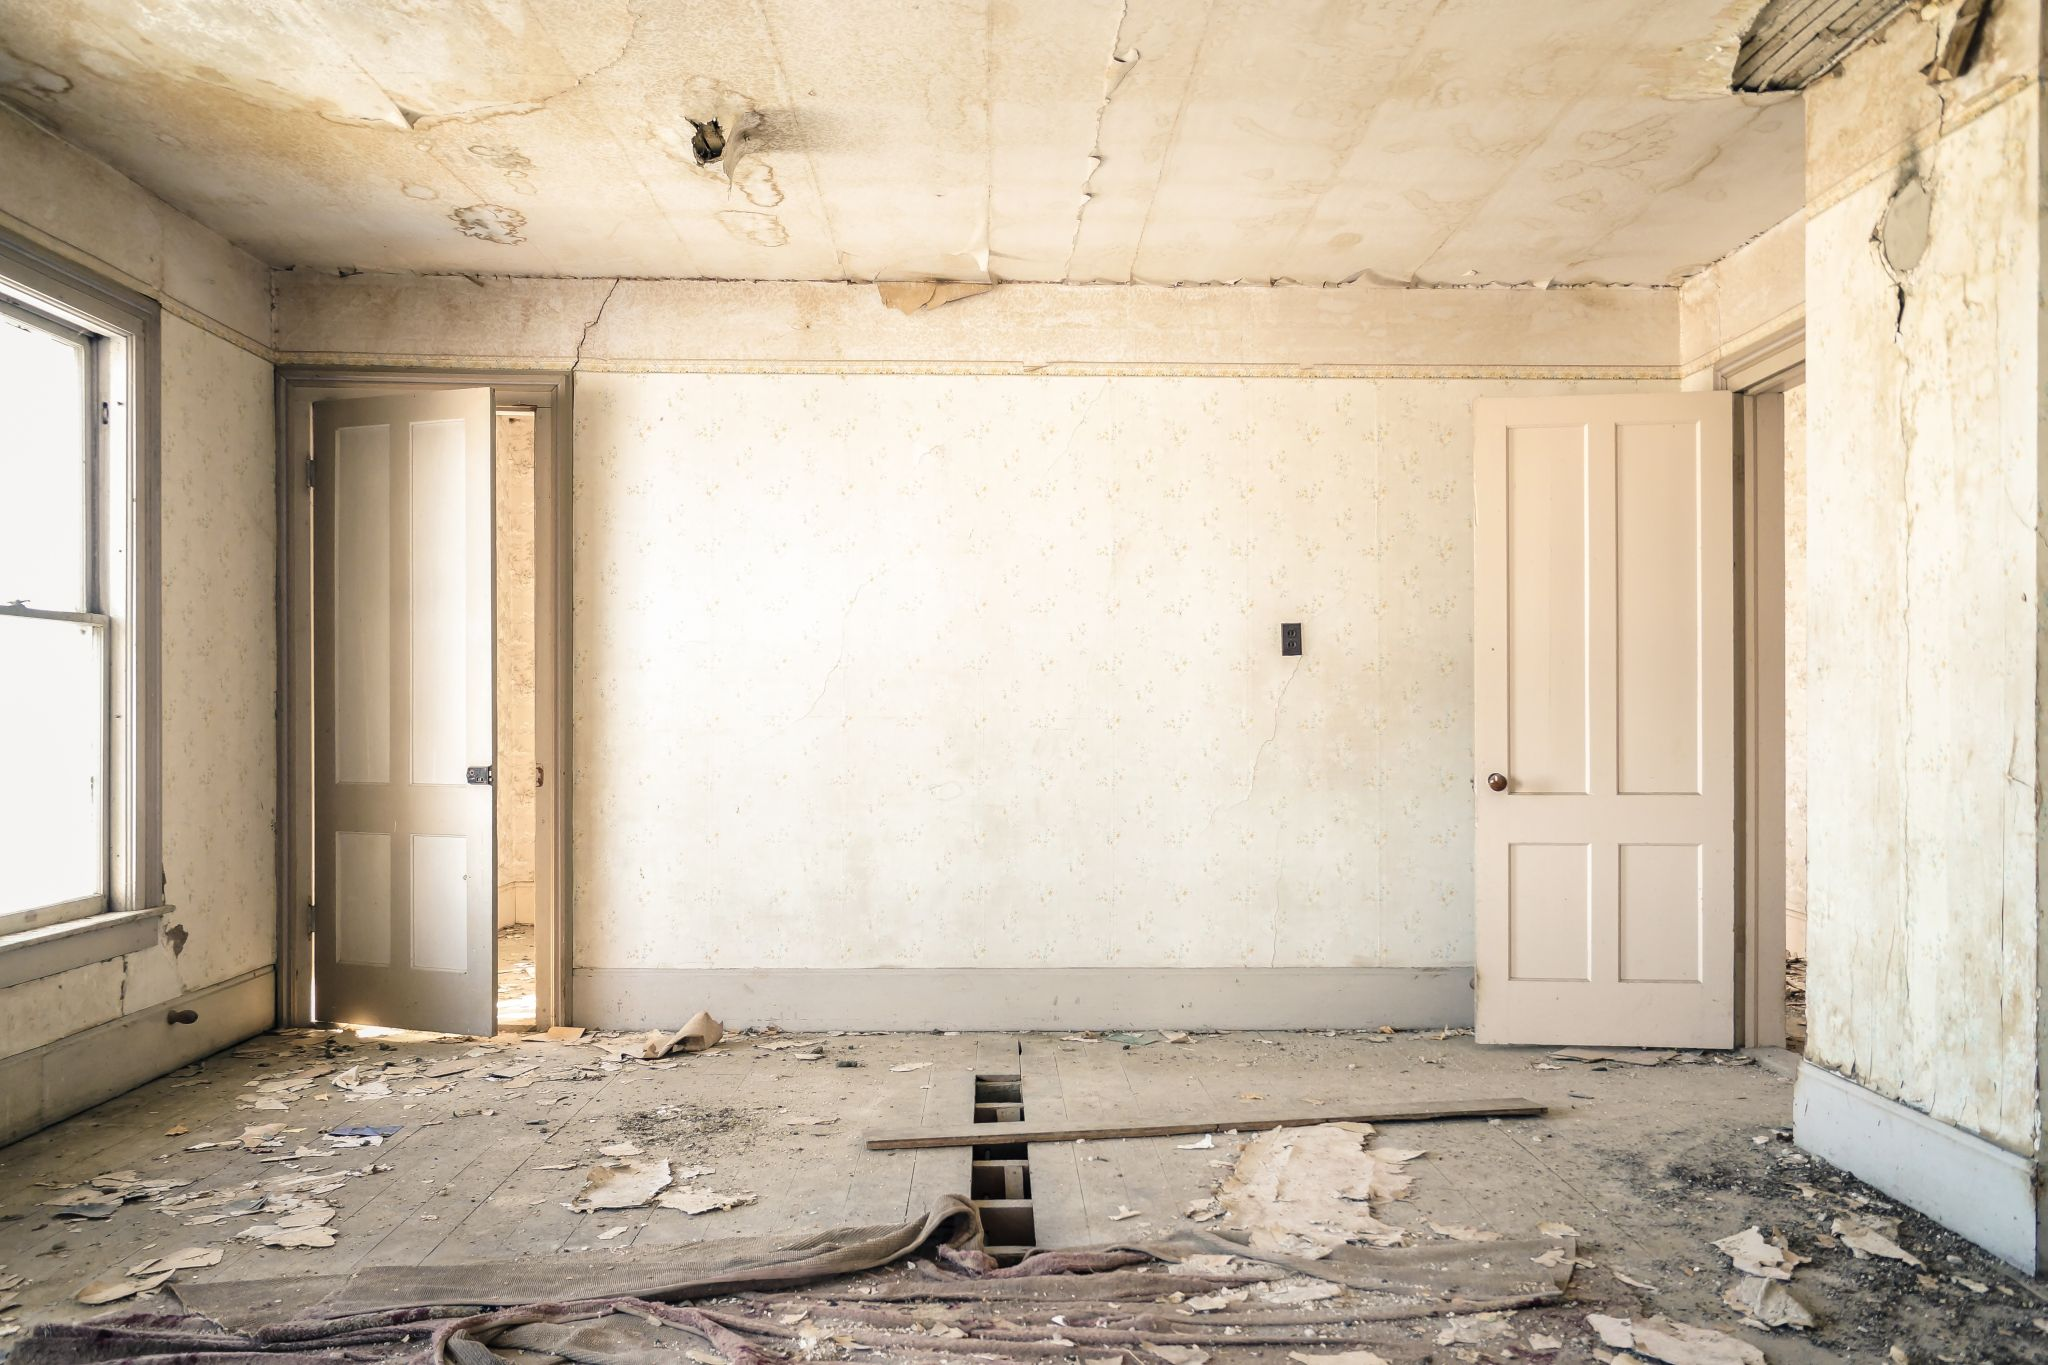 A room in need of renovation - DIY Projects